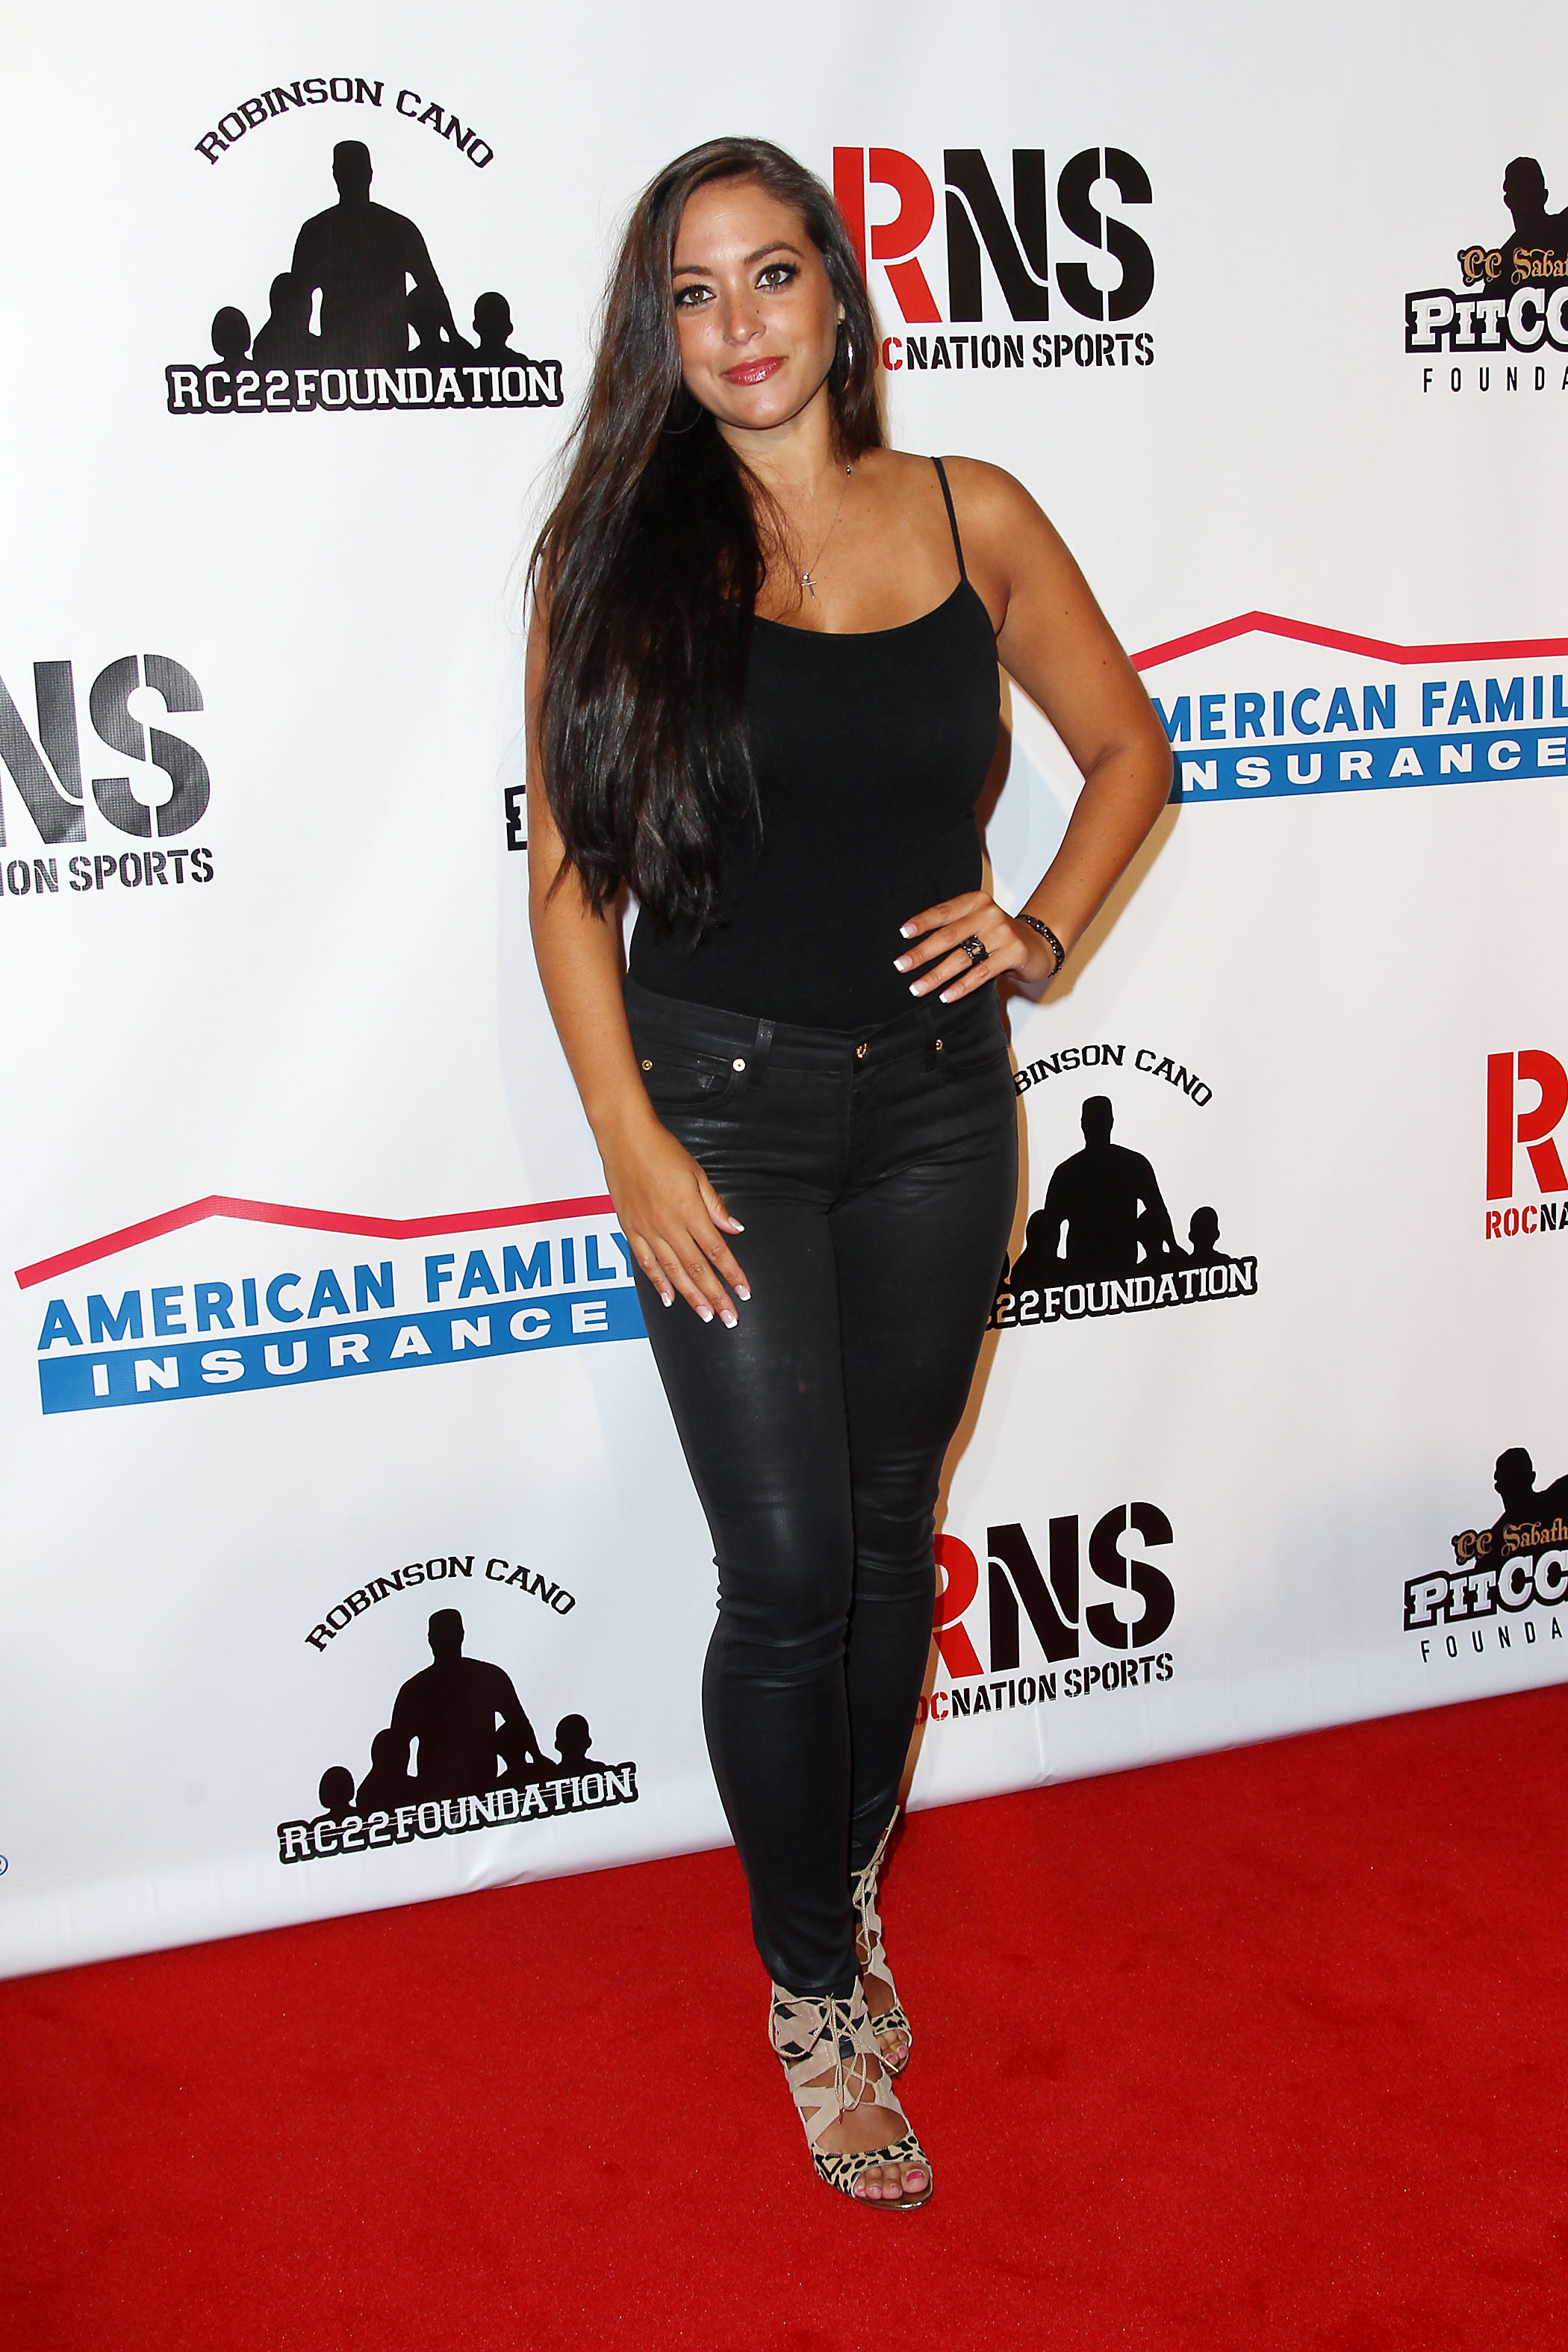 Sammi Giancola Shares Cryptic Post Amid 'Jersey Shore' Premiere